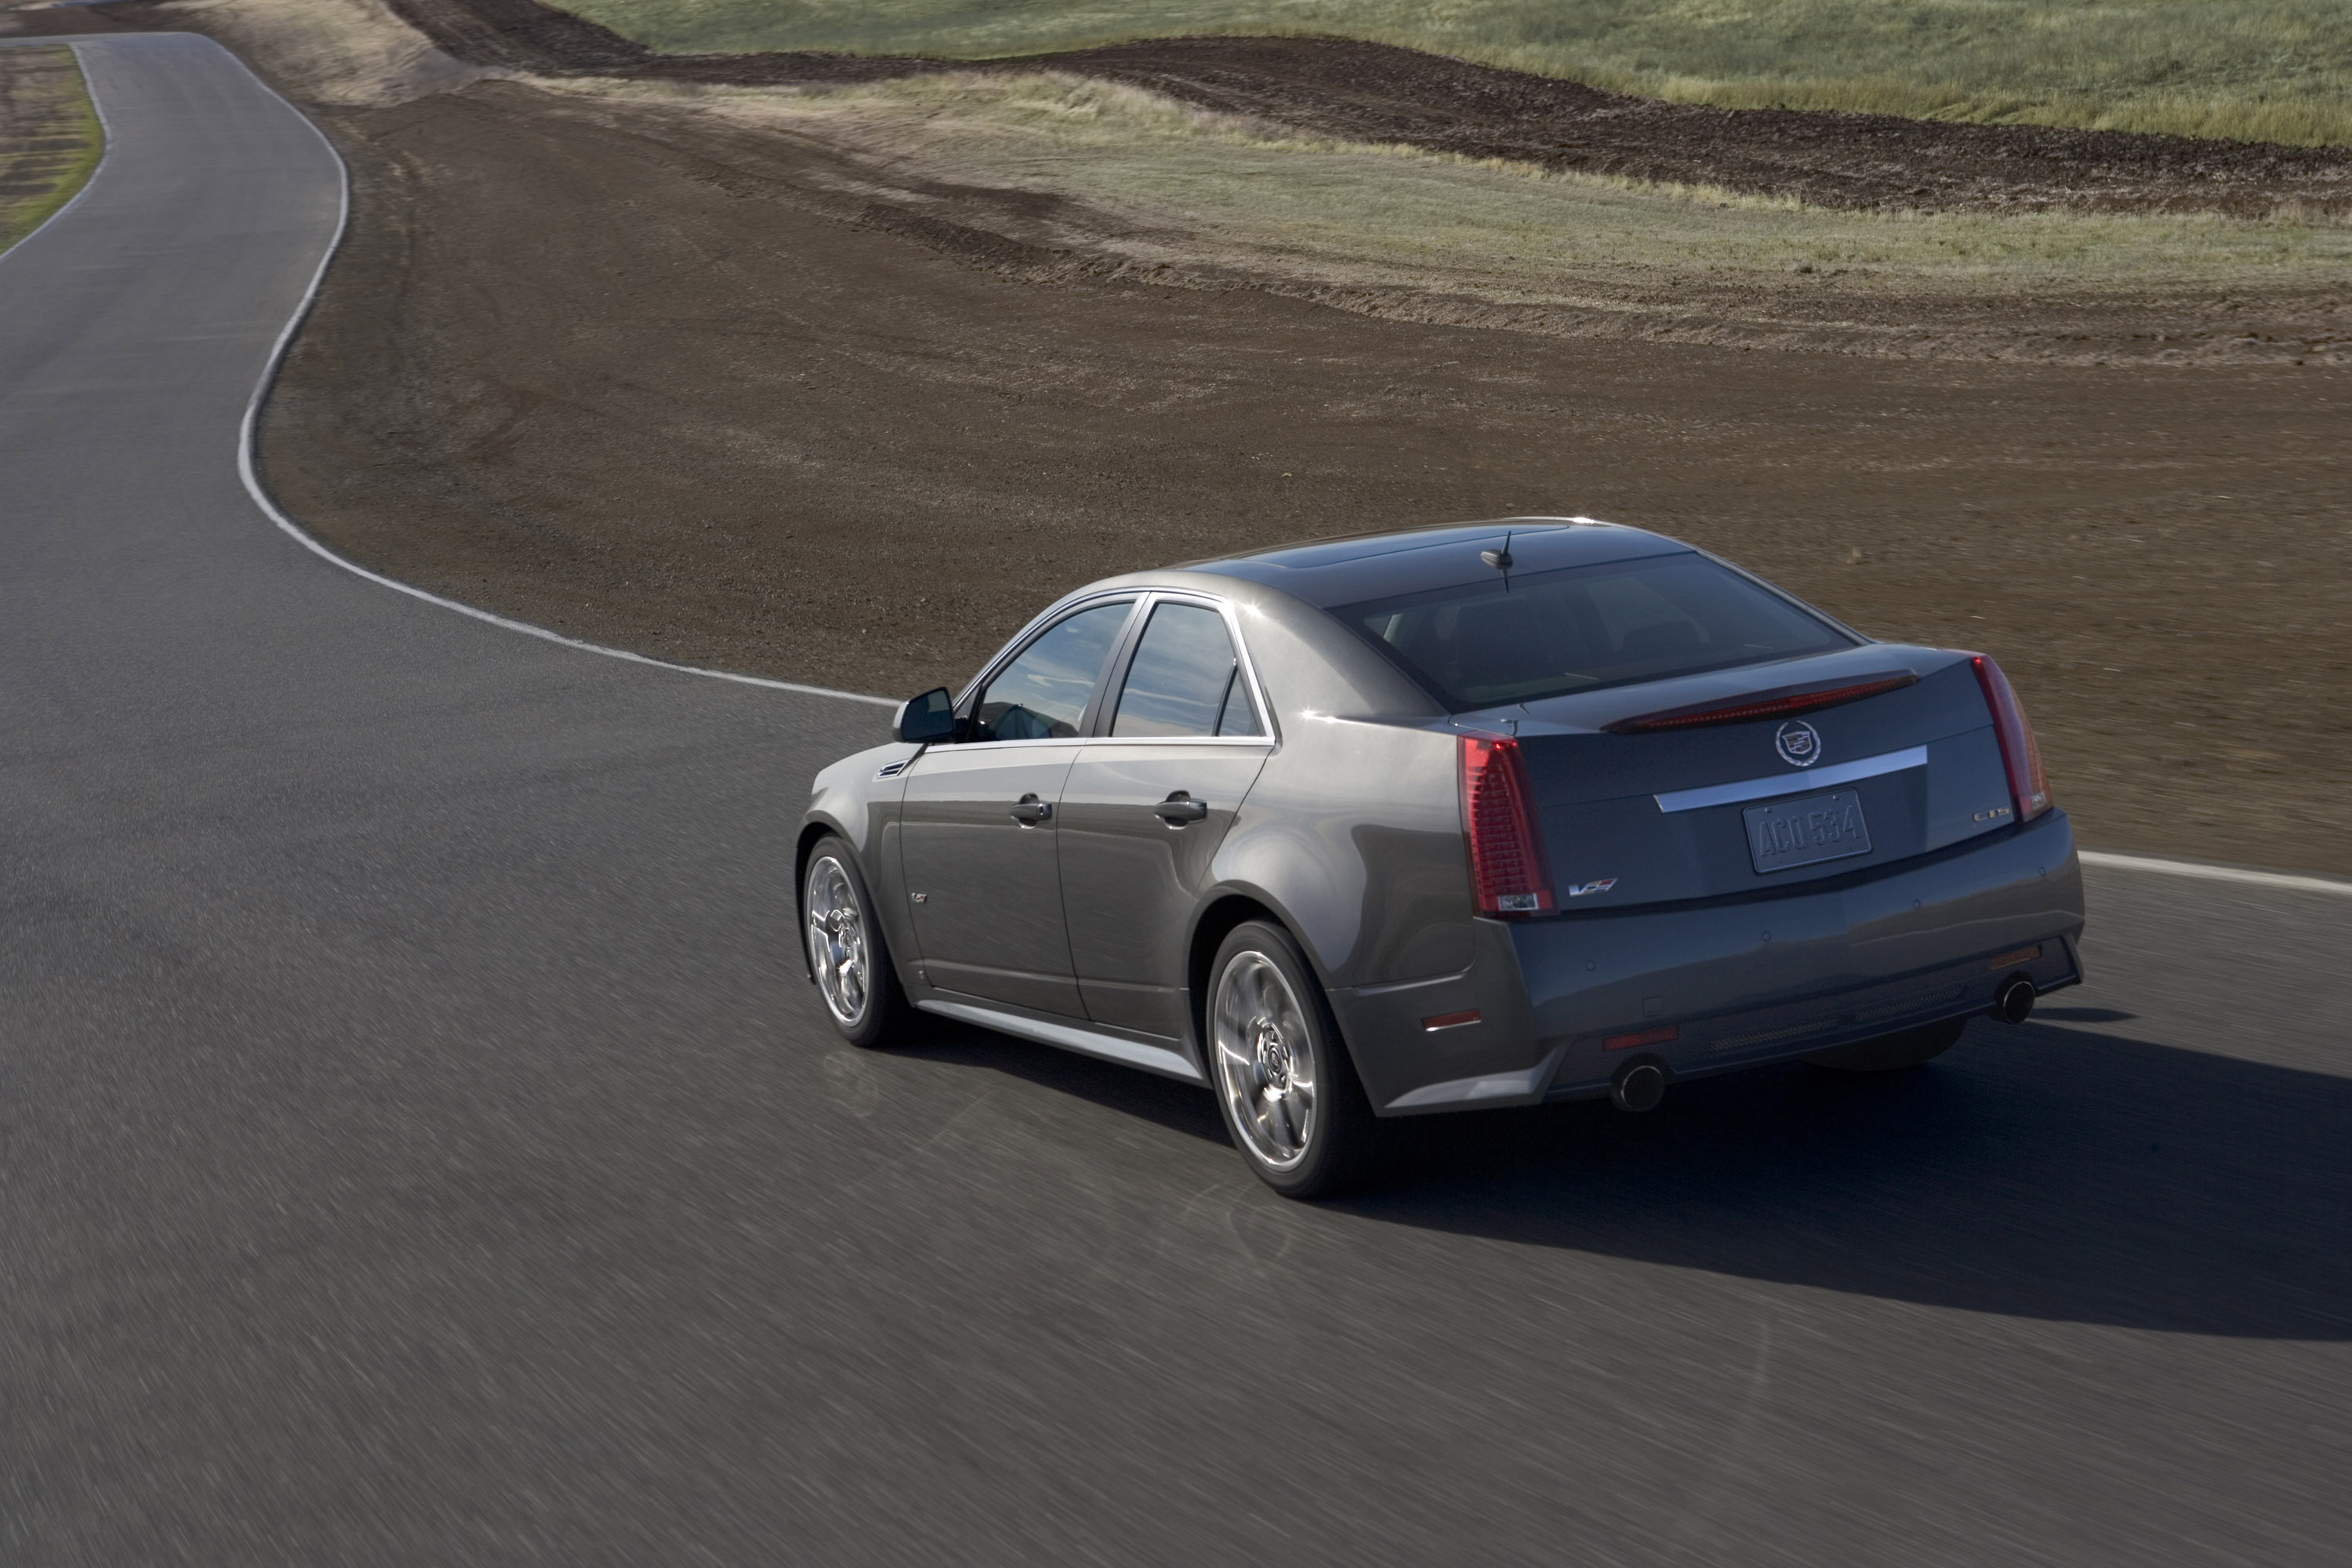 reviews cadillac v sale car prevnext for gear auto top cts drive used first sedan